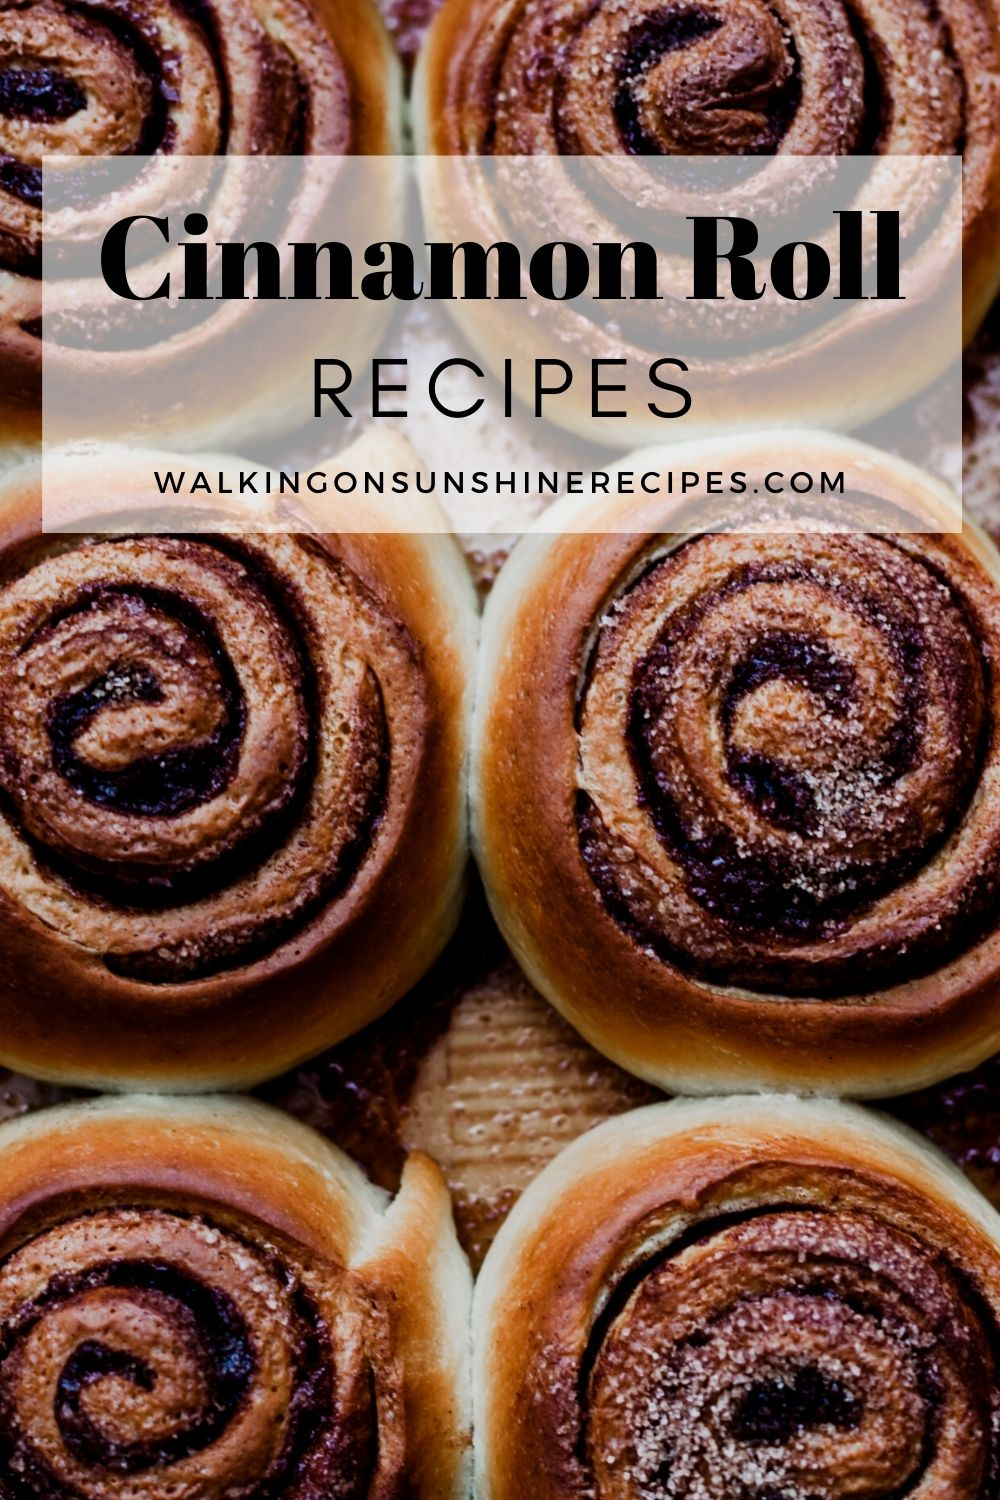 baked cinnamon rolls without glaze.